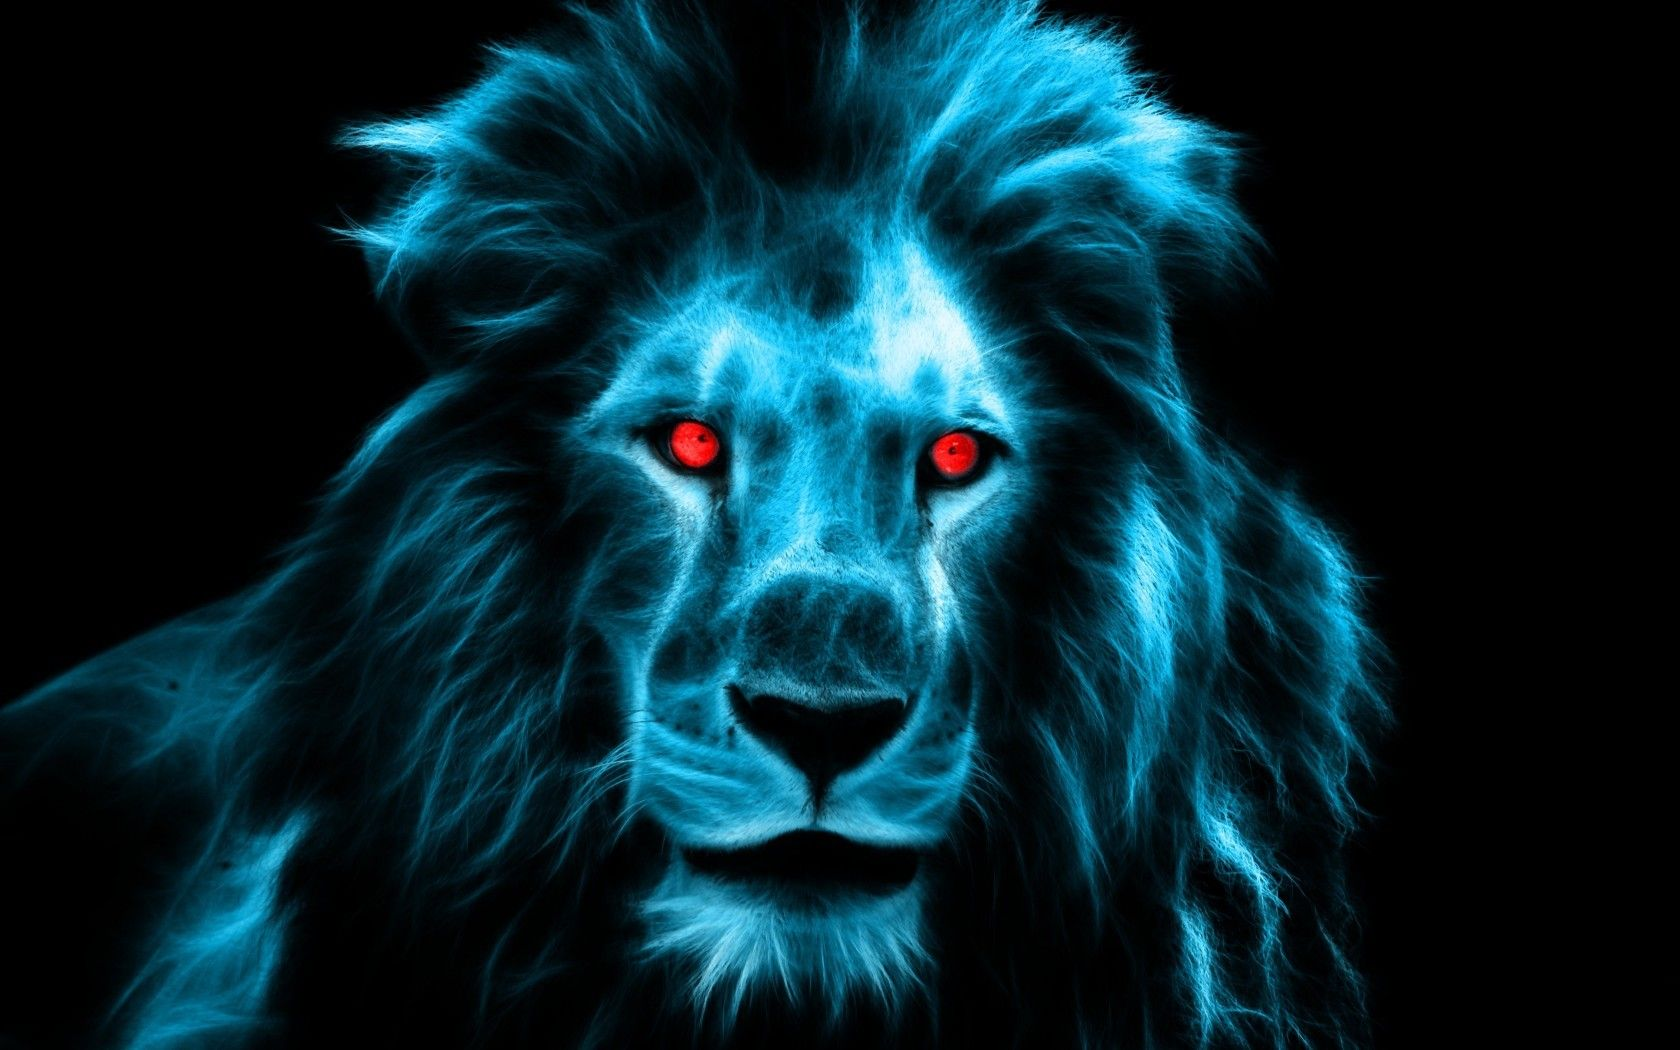 Blue Lion Wallpapers Top Free Blue Lion Backgrounds Wallpaperaccess